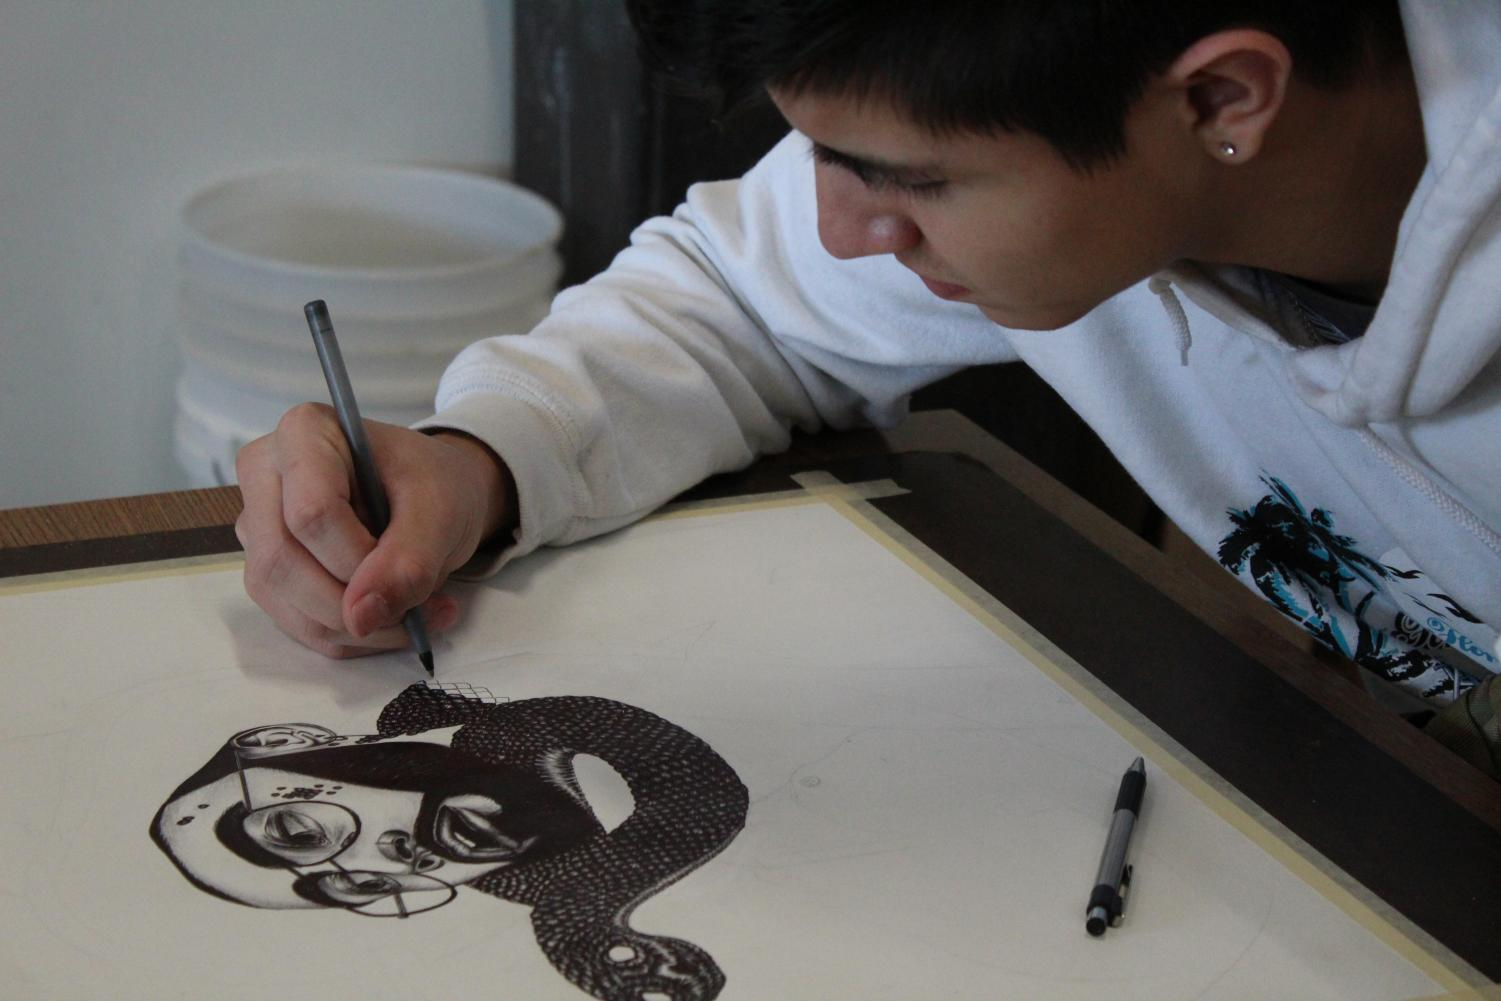 Robert Fuentes working on his drawing.